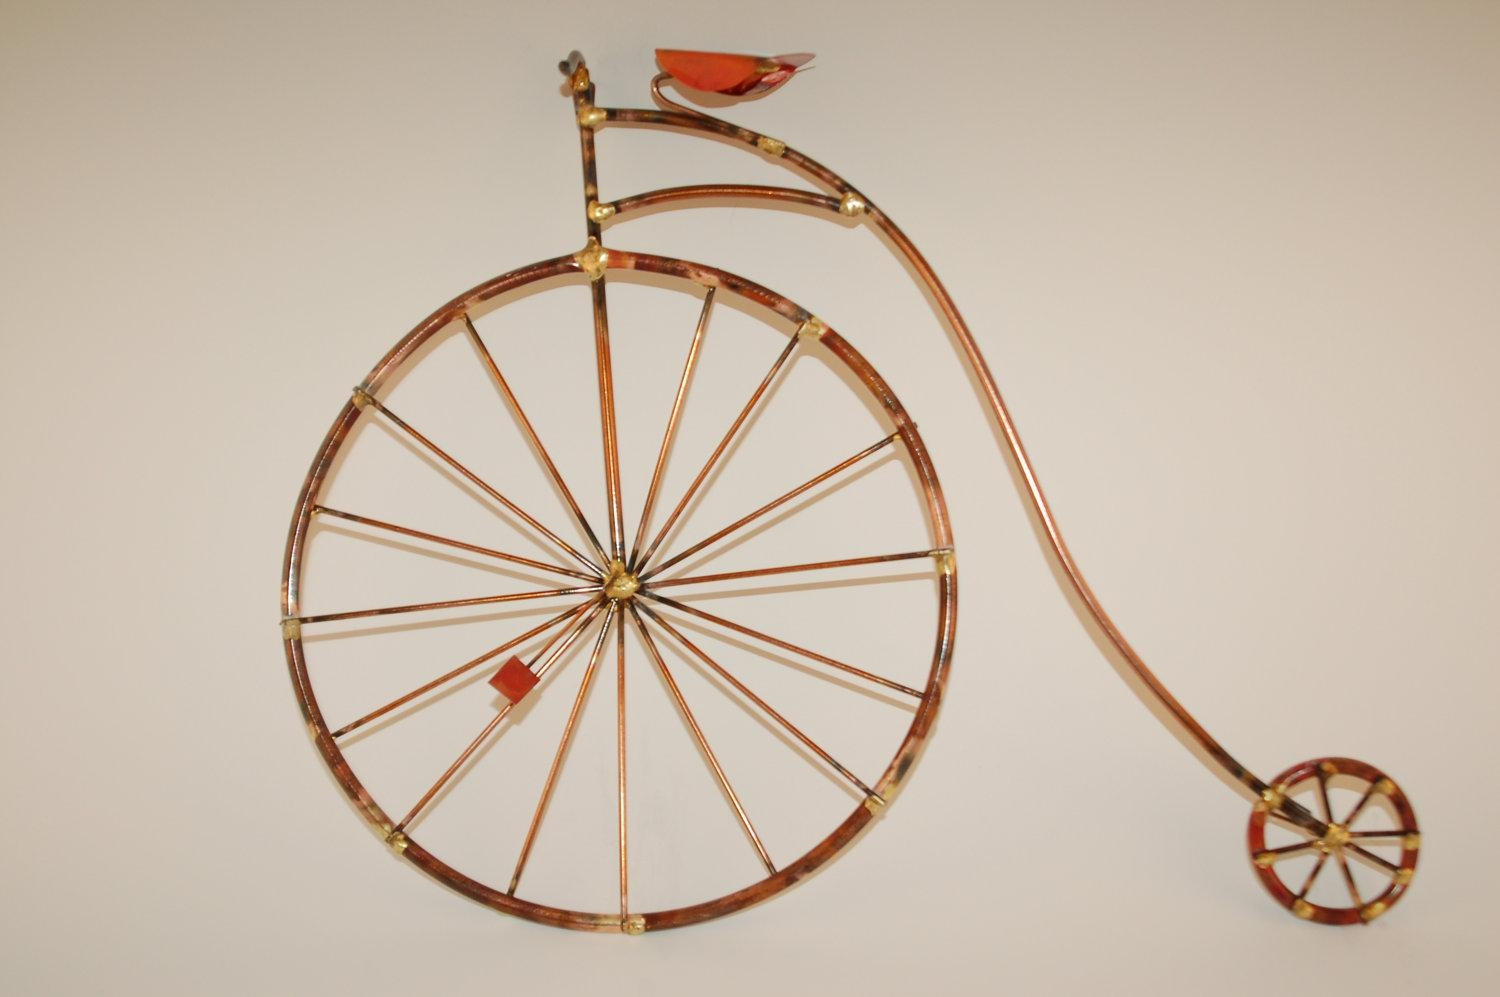 Penny Farthing Bikes Old Fashion Giant Bicyclehigh Pertaining To Metal Bicycle Wall Art (Image 11 of 20)